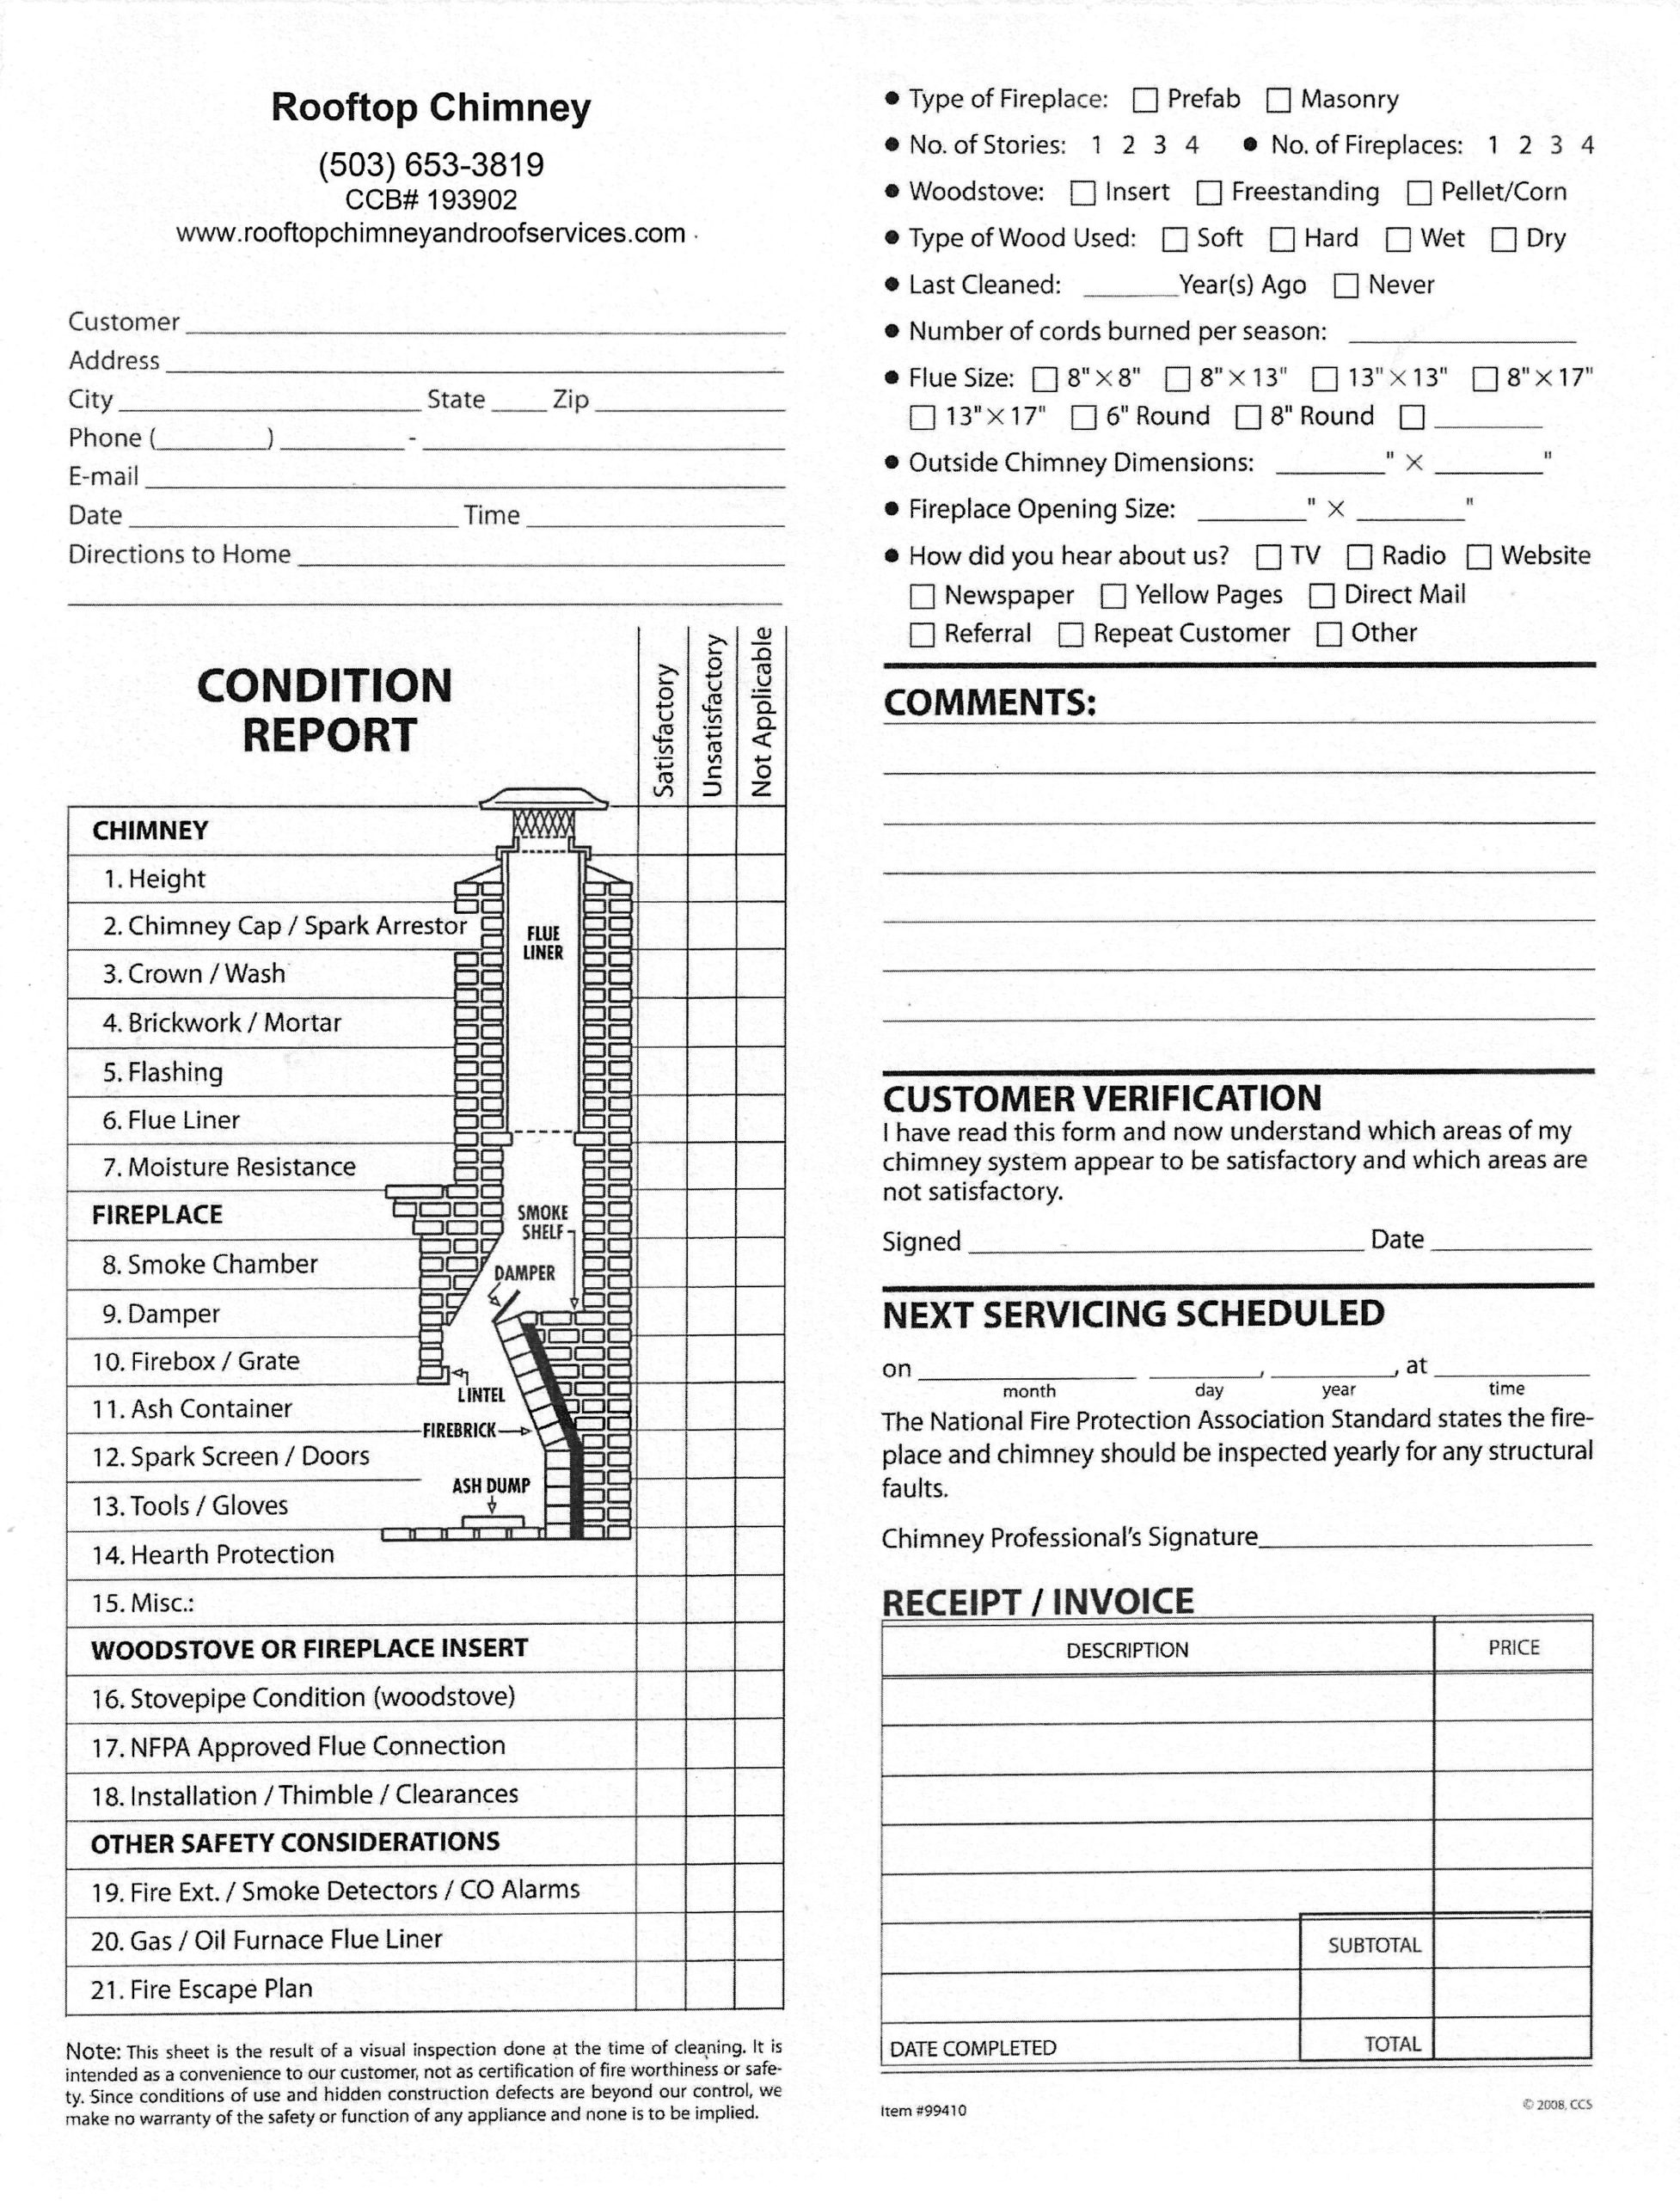 A Chimney Condition Report form